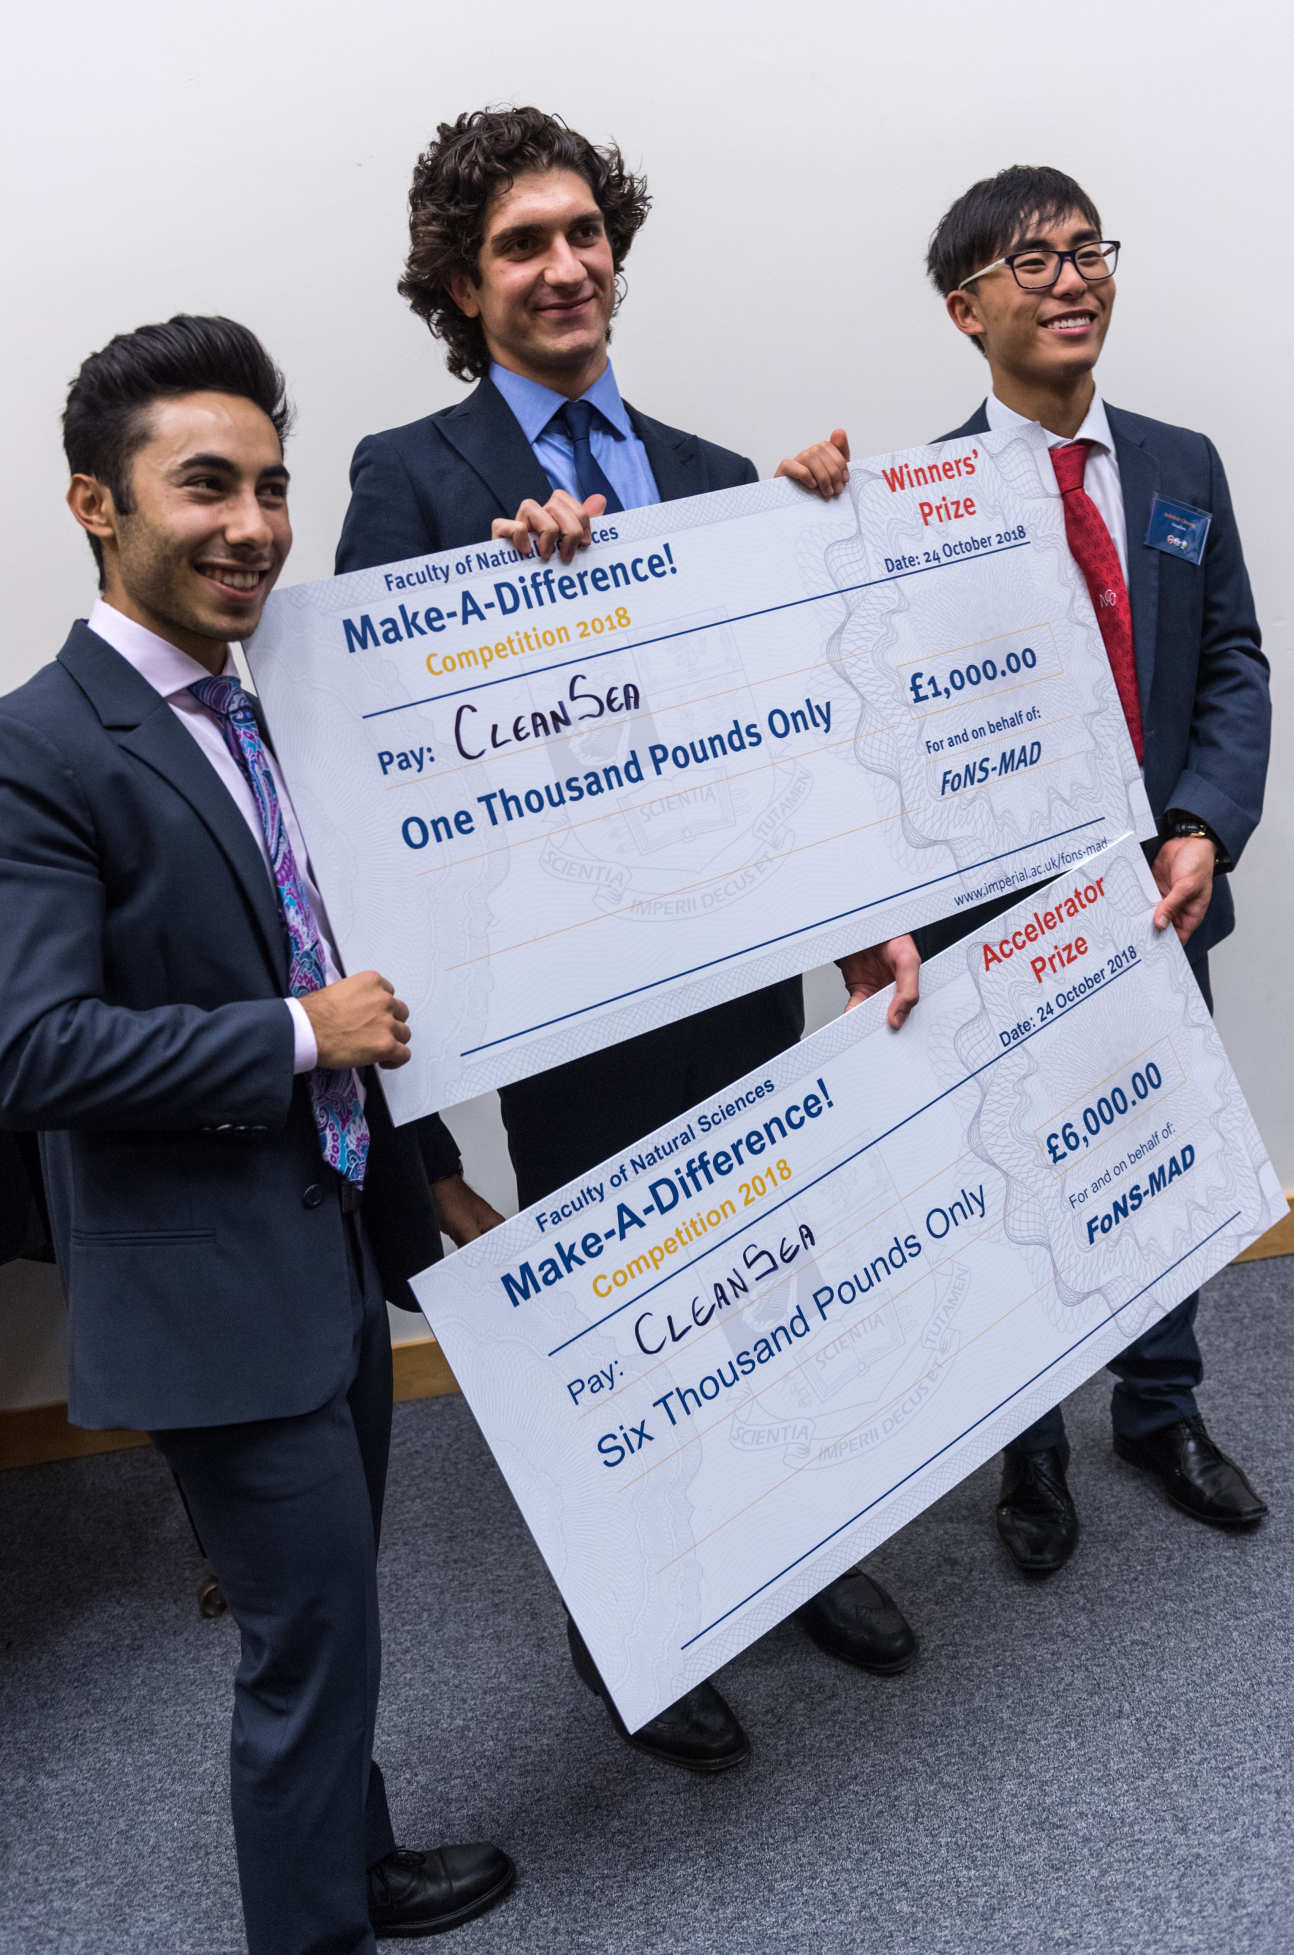 CleanSea with two giant cheques